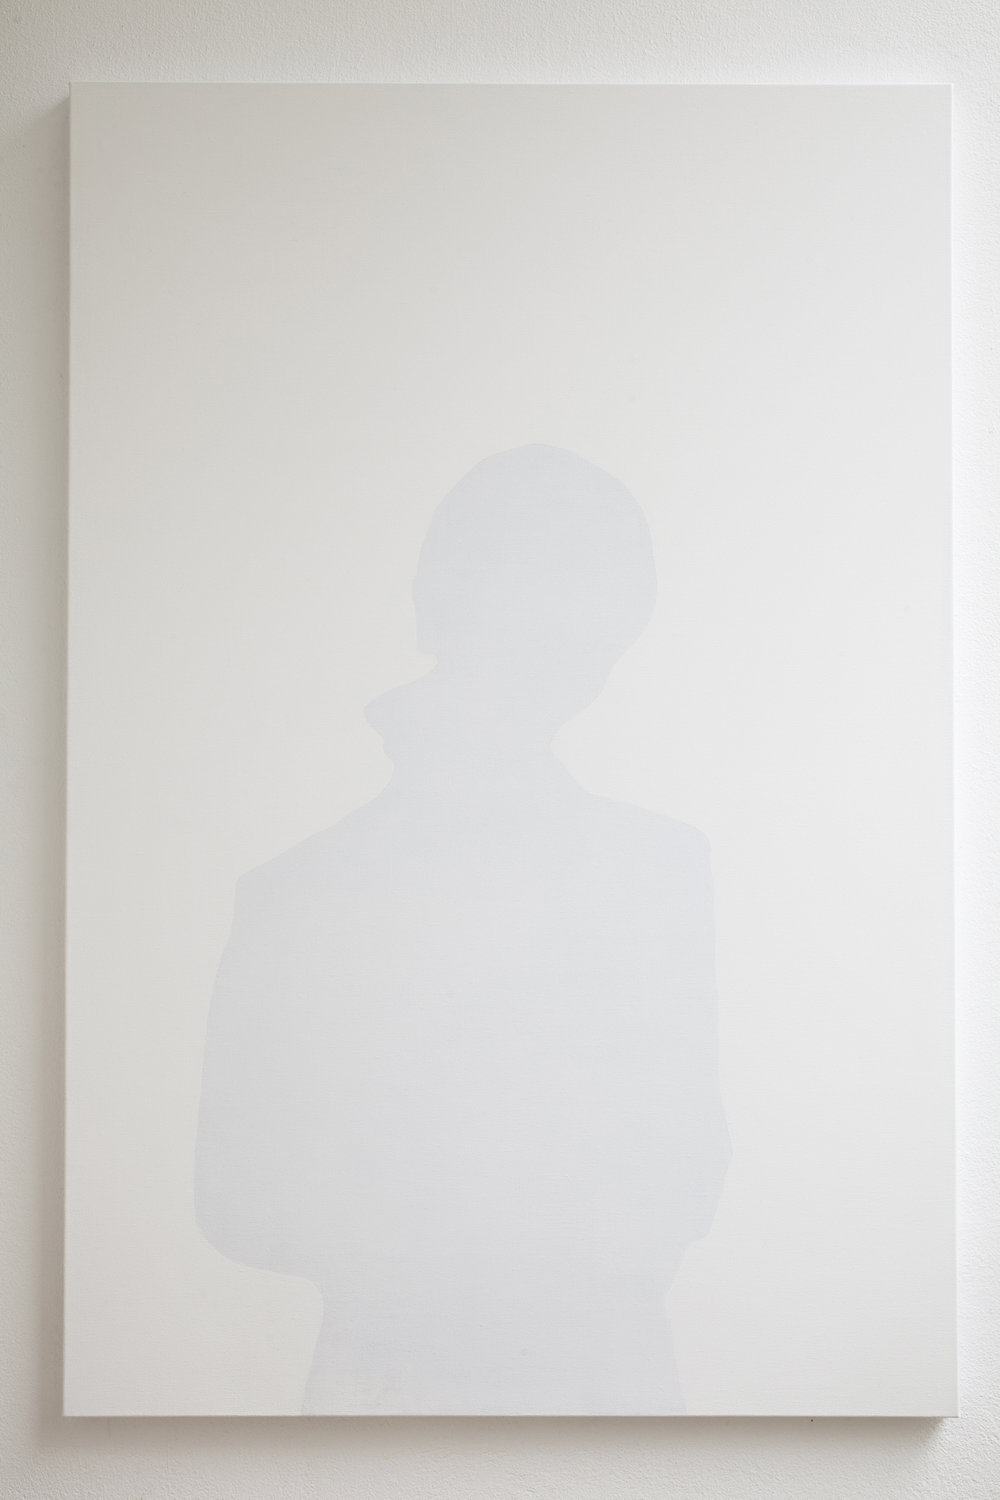 Shadow of a women, 2011, acrylic on canvas, 80 x 120 cm